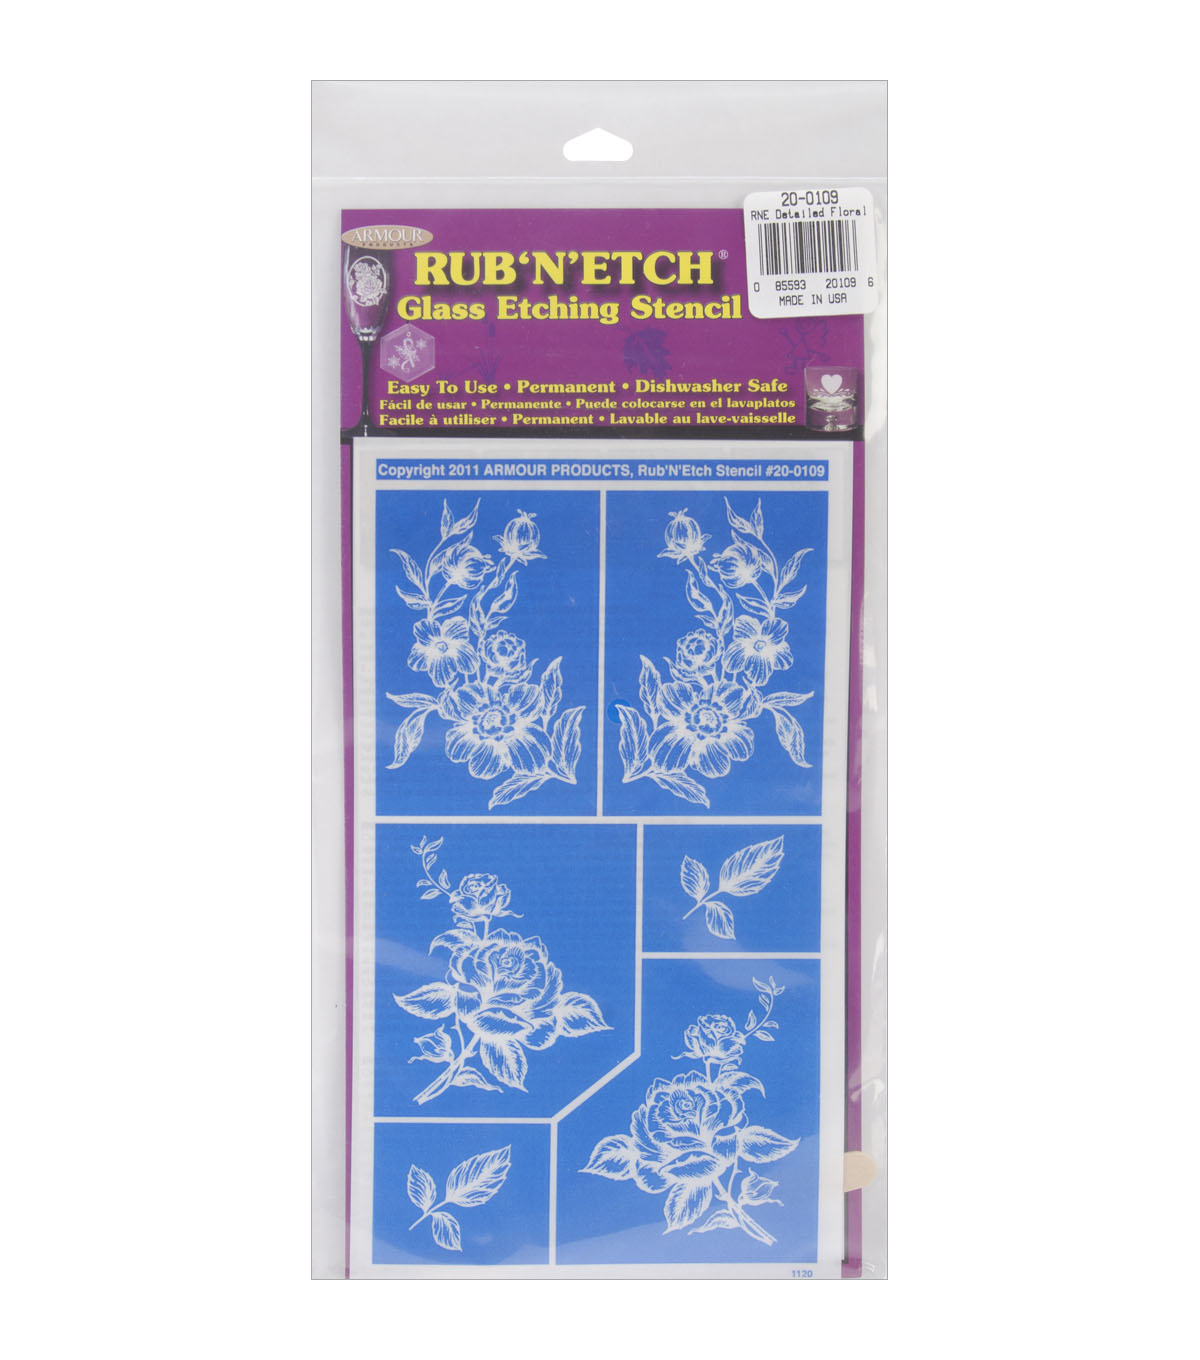 Rub \u0027n Etch Glass Etching Stencils-Group #4